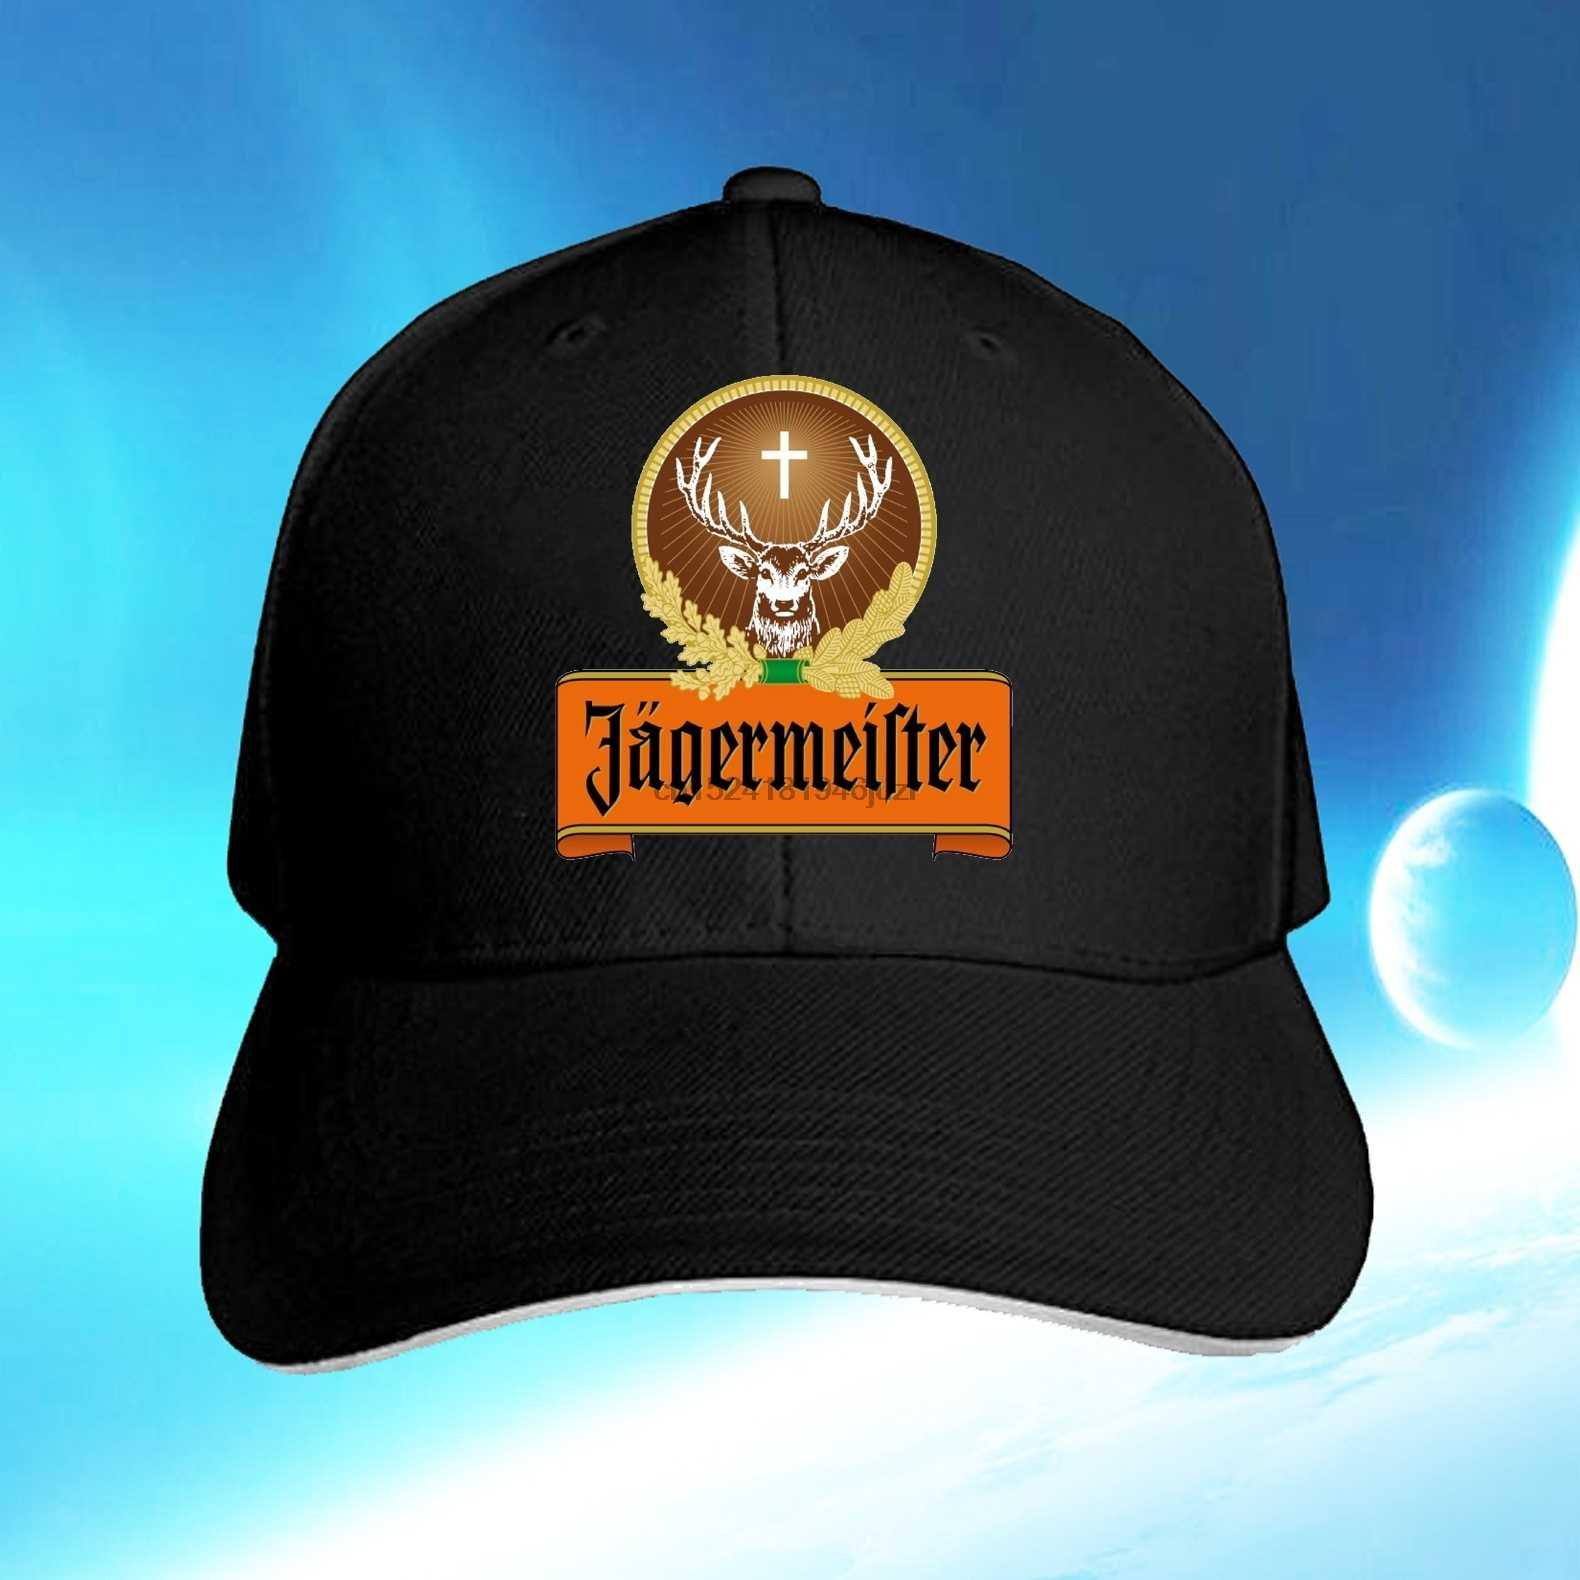 5894e3d039a Detail Feedback Questions about Jagermeister Design Fashion Adjustable  Peaked Cap Baseball Cap Golf Hats on Aliexpress.com